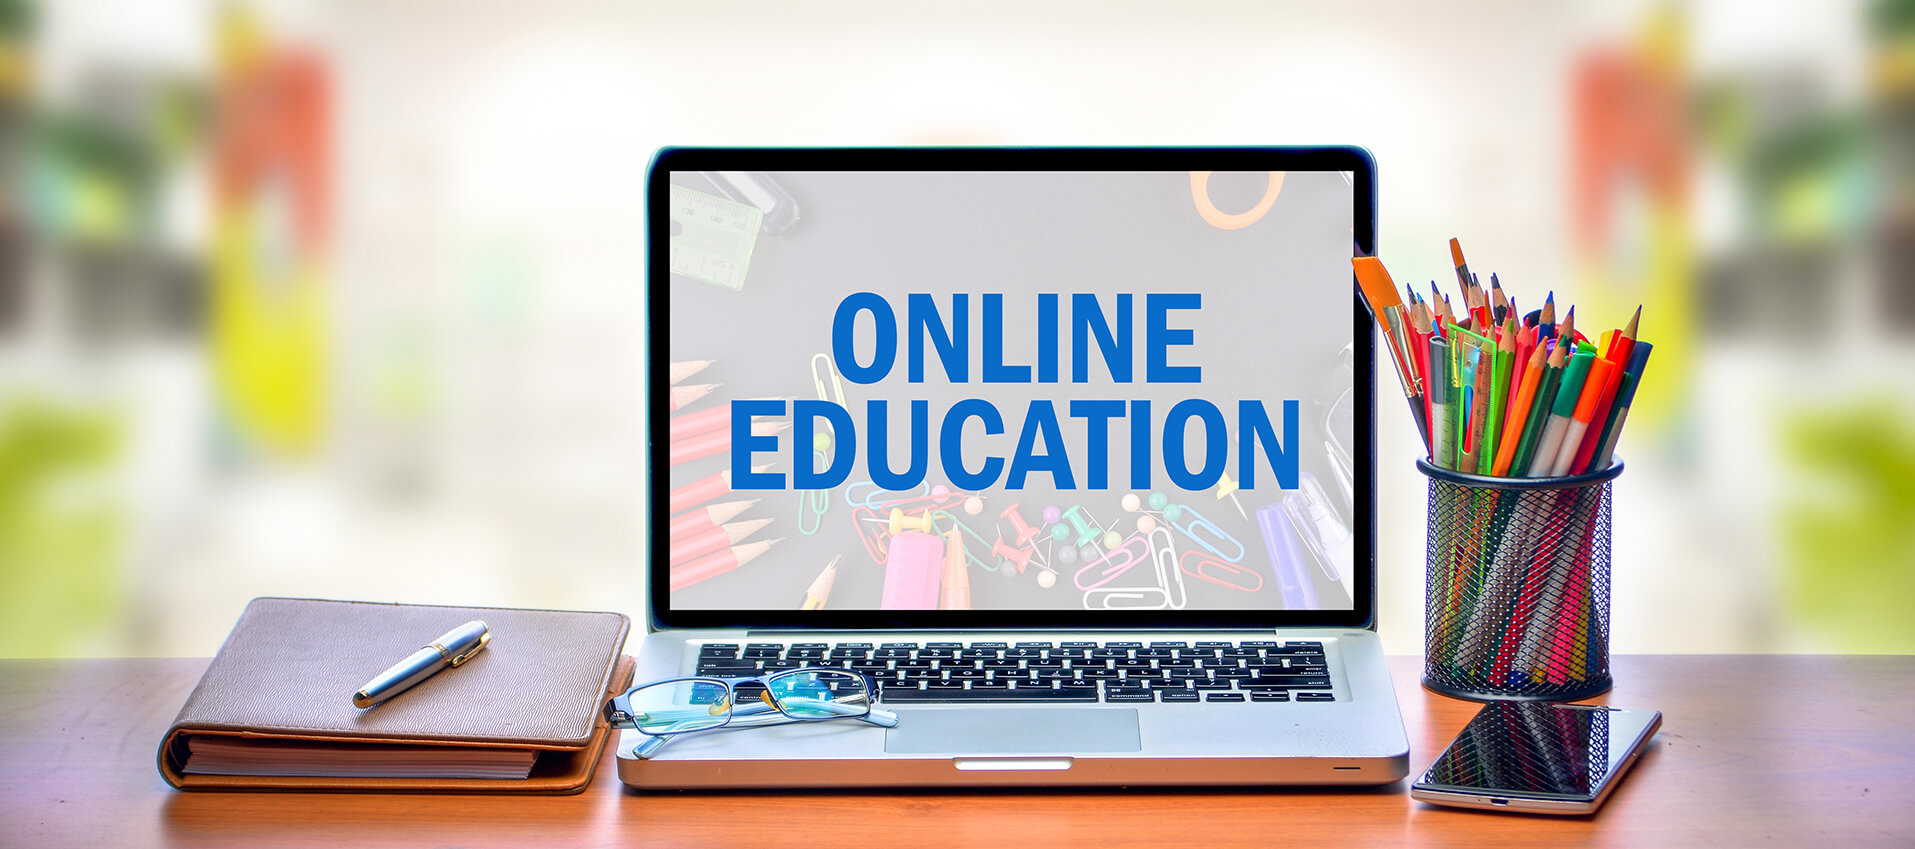 Online Education - small business ideas